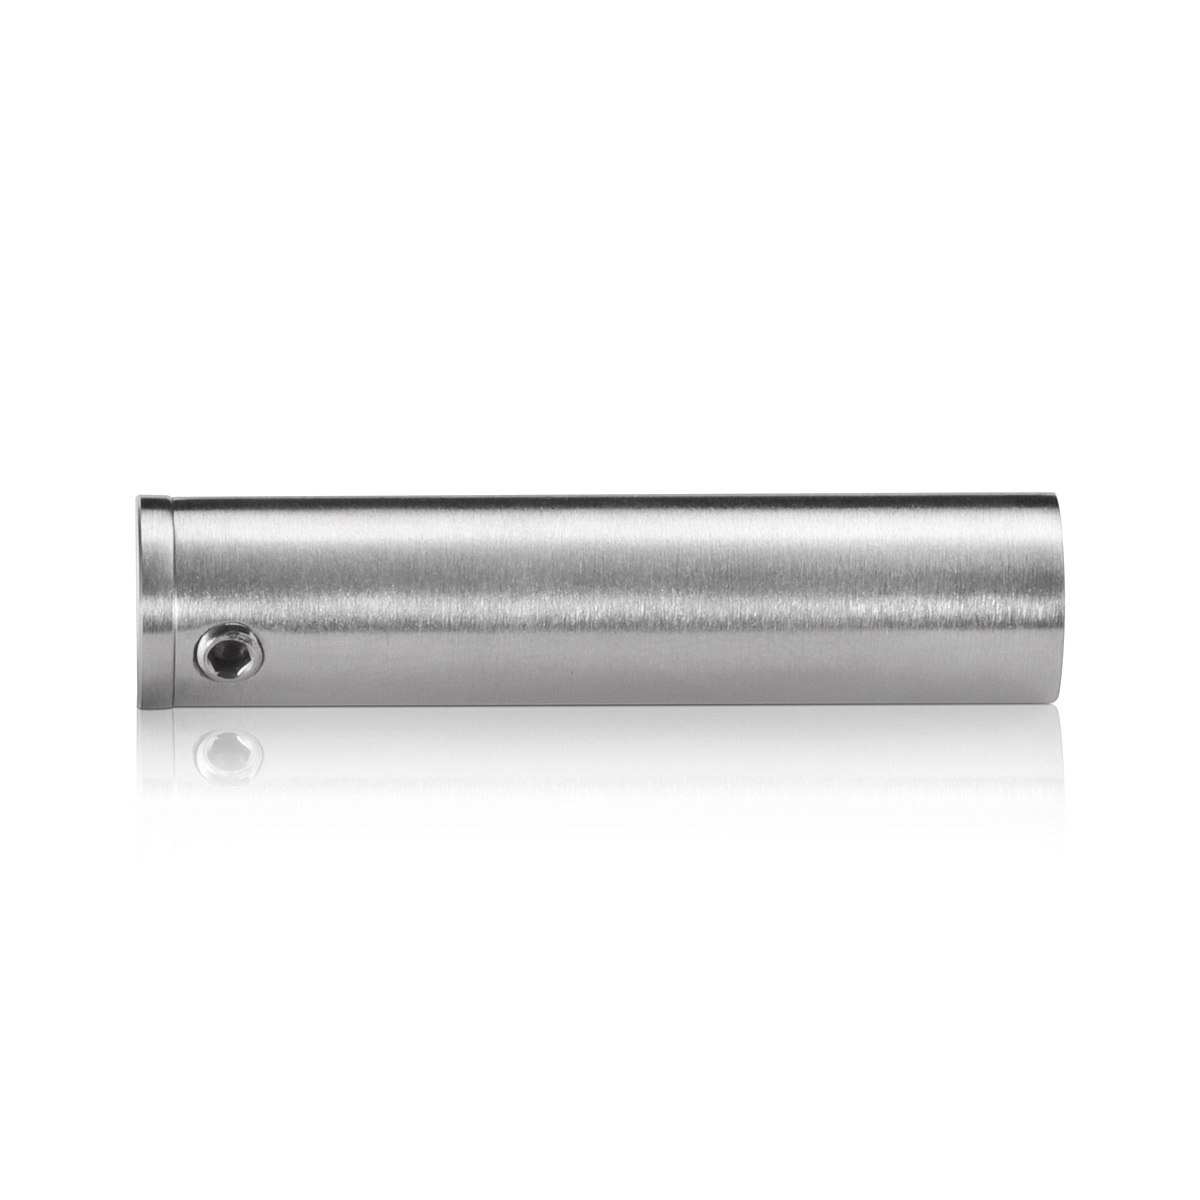 1/2'' Diameter x 2'' Barrel Length, Stainless Steel Glass Standoff Satin Brushed Finish  (Indoor)